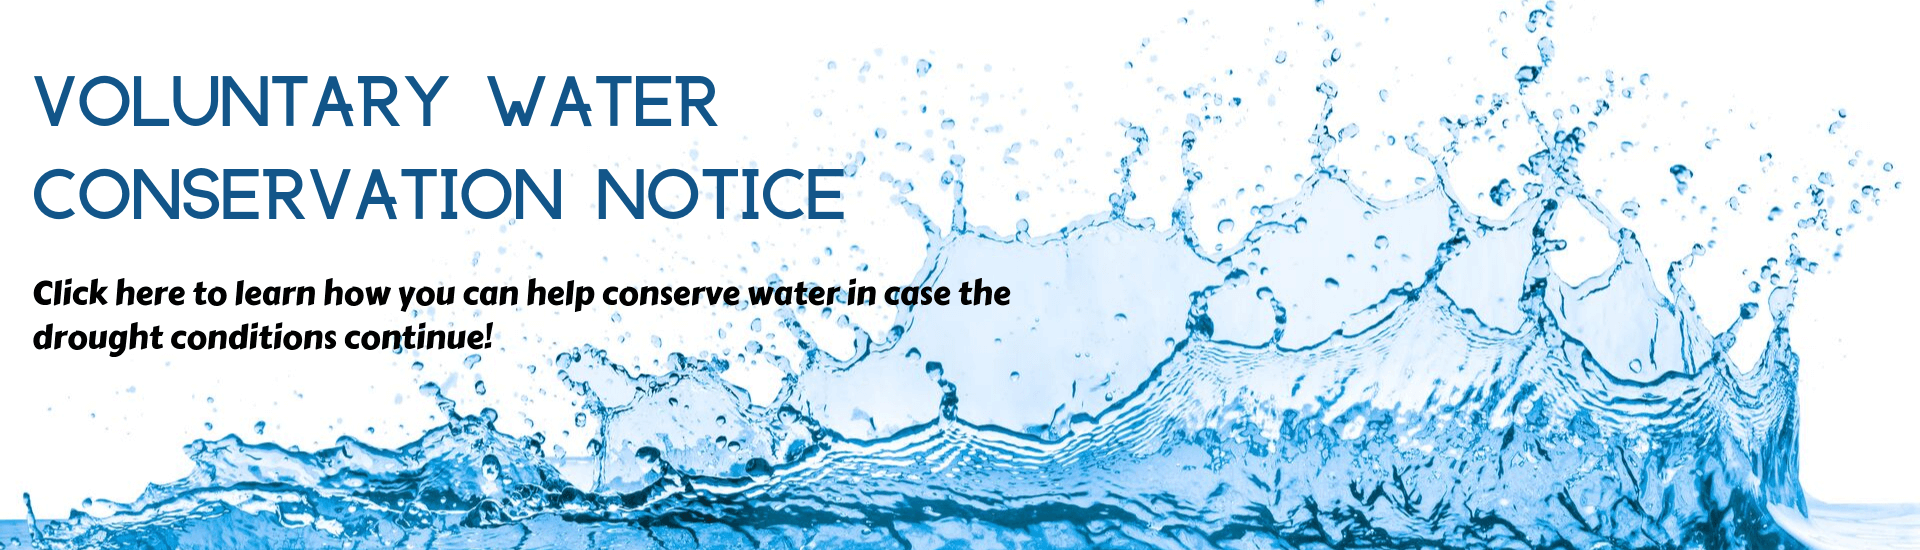 Voluntary water conservation notice